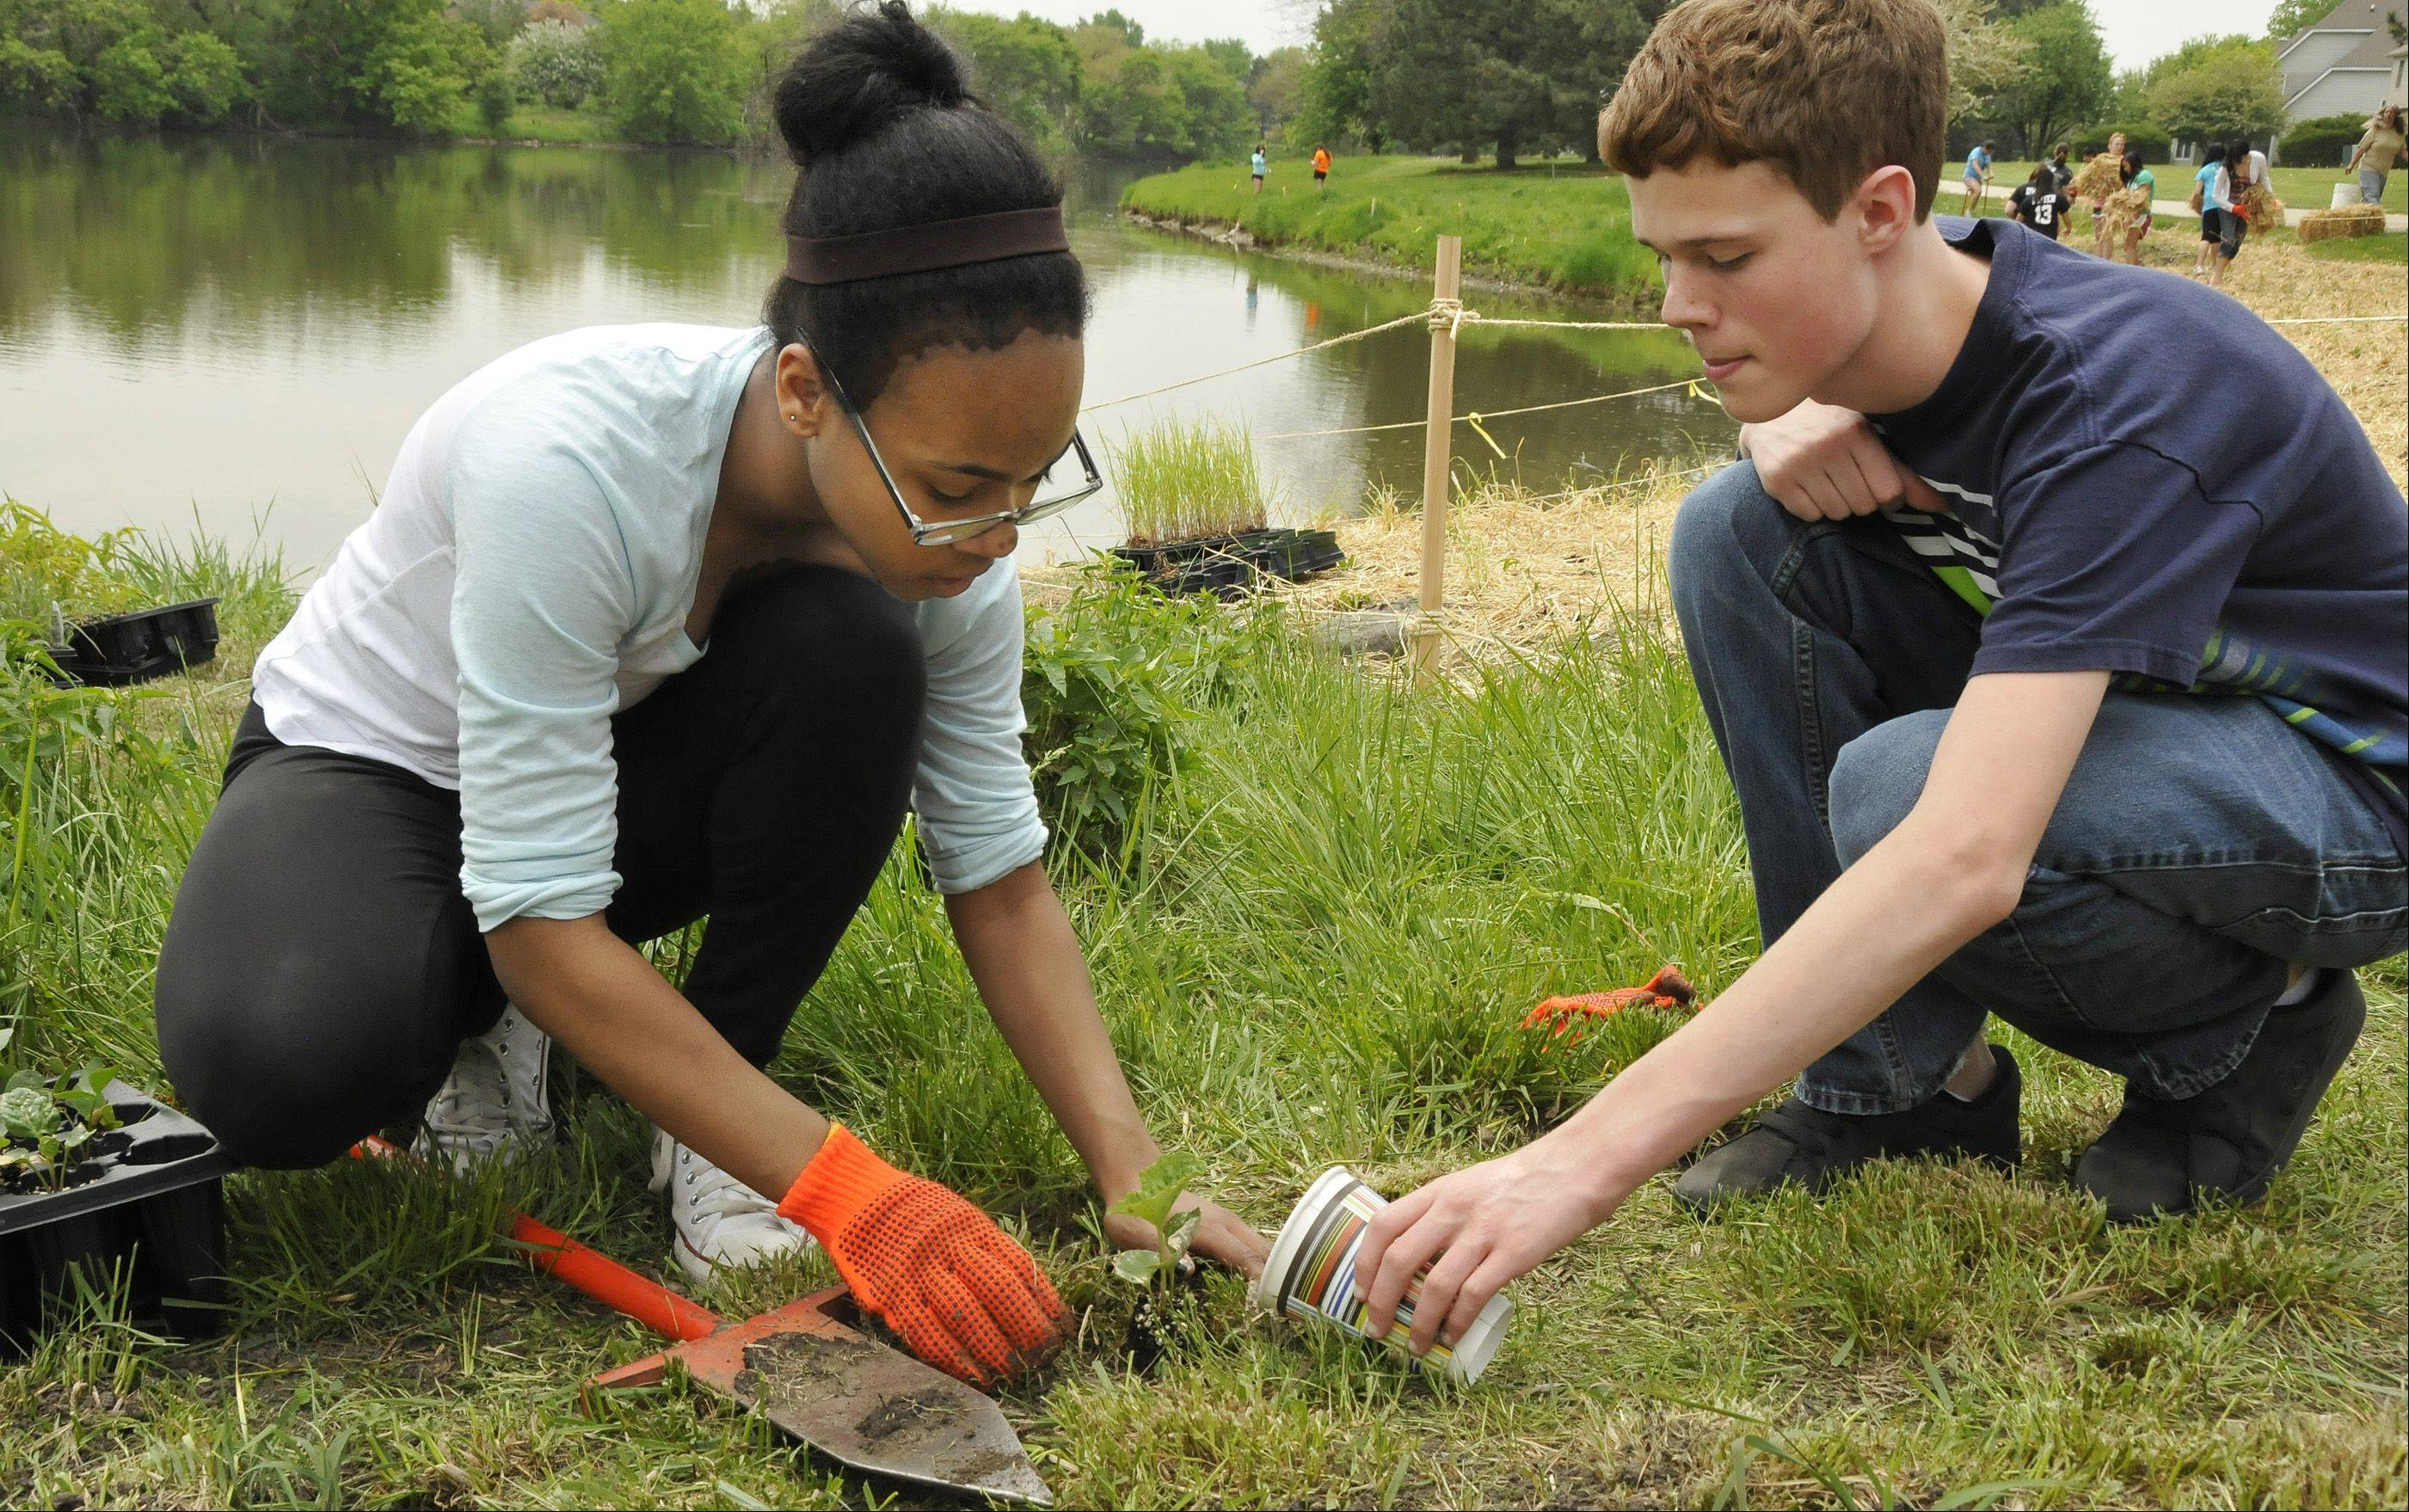 Bria Allen, left, and Danny Sori plant and water a native Cup Plant at Waubonsie Lake. When the plant gets bigger, its leaves will collect rainwater that birds will be able to drink.